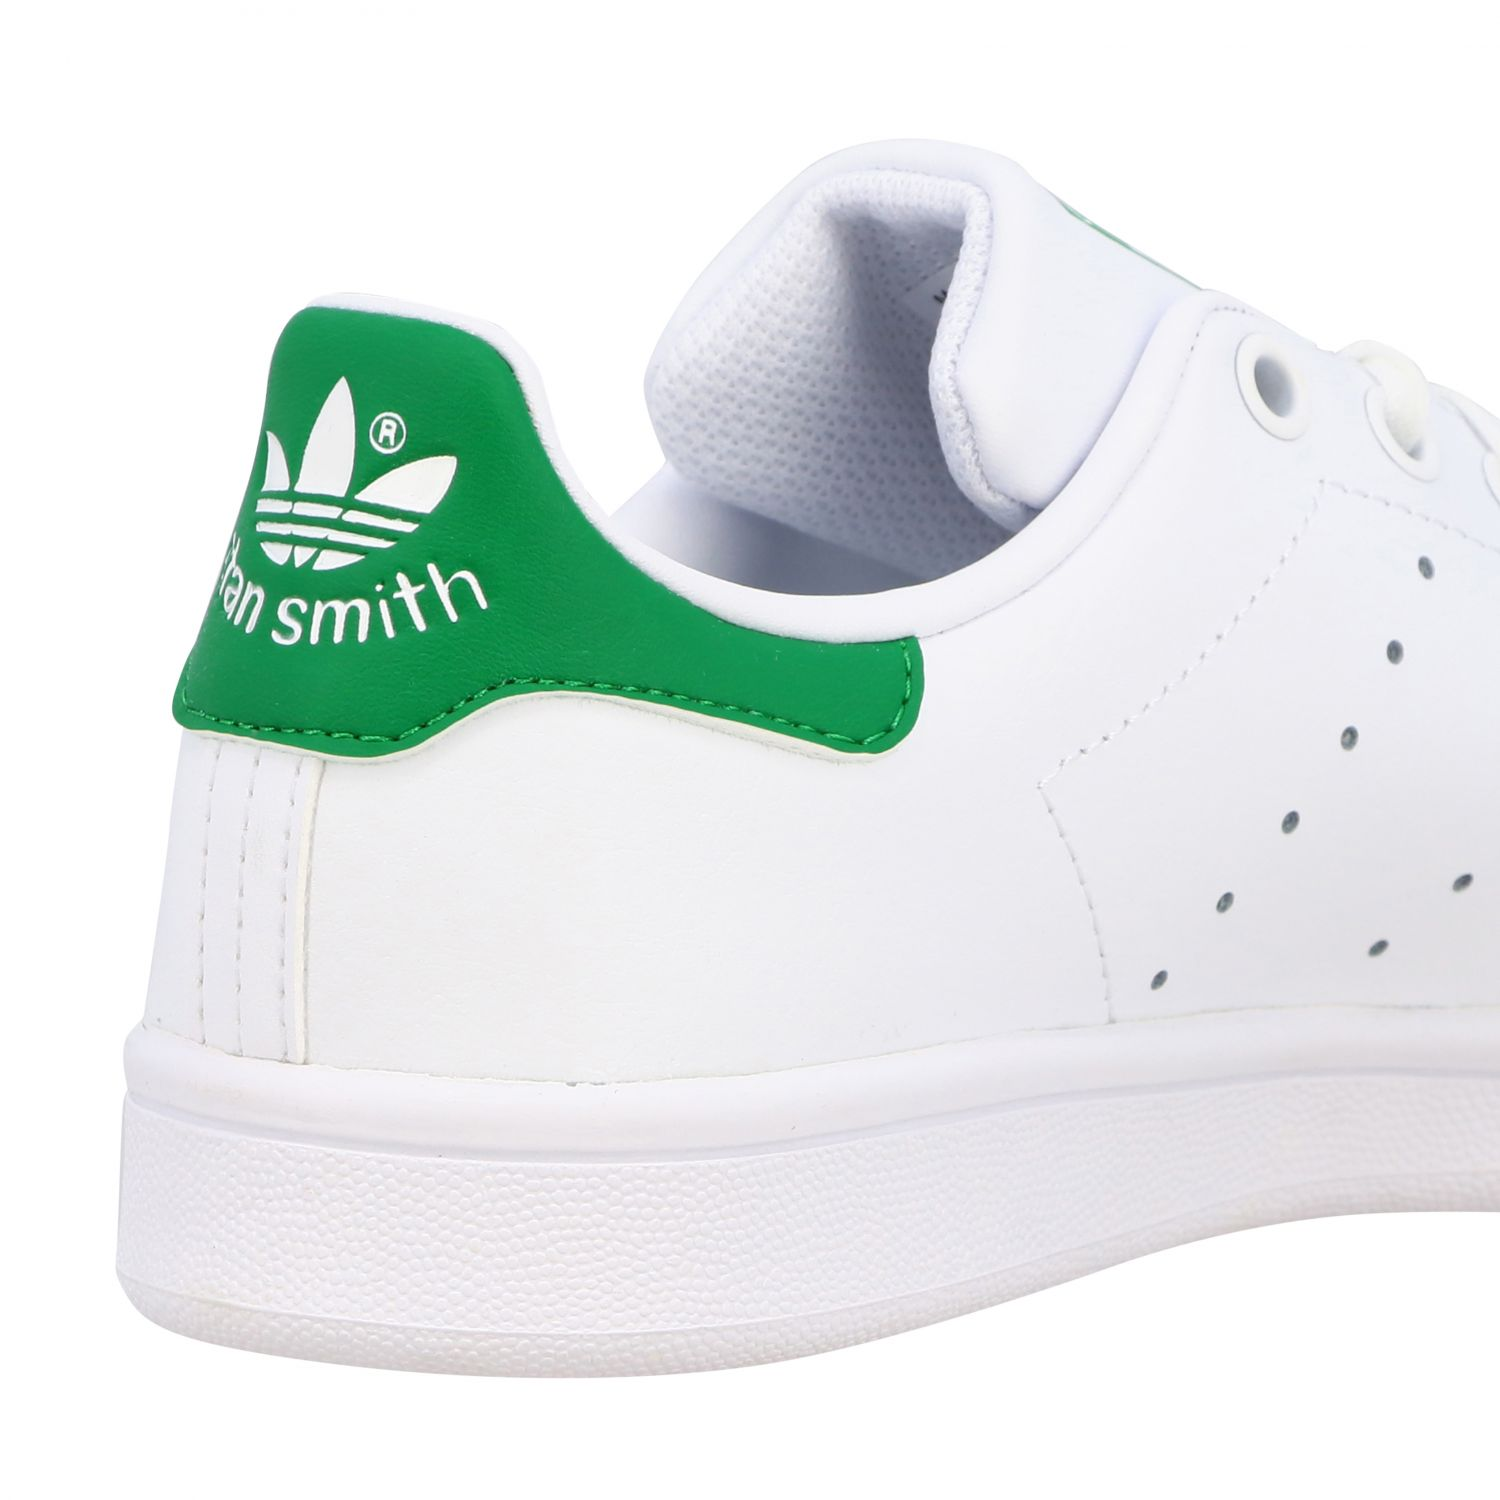 Shoes Adidas Originals: Shoes kids Adidas Originals white 5